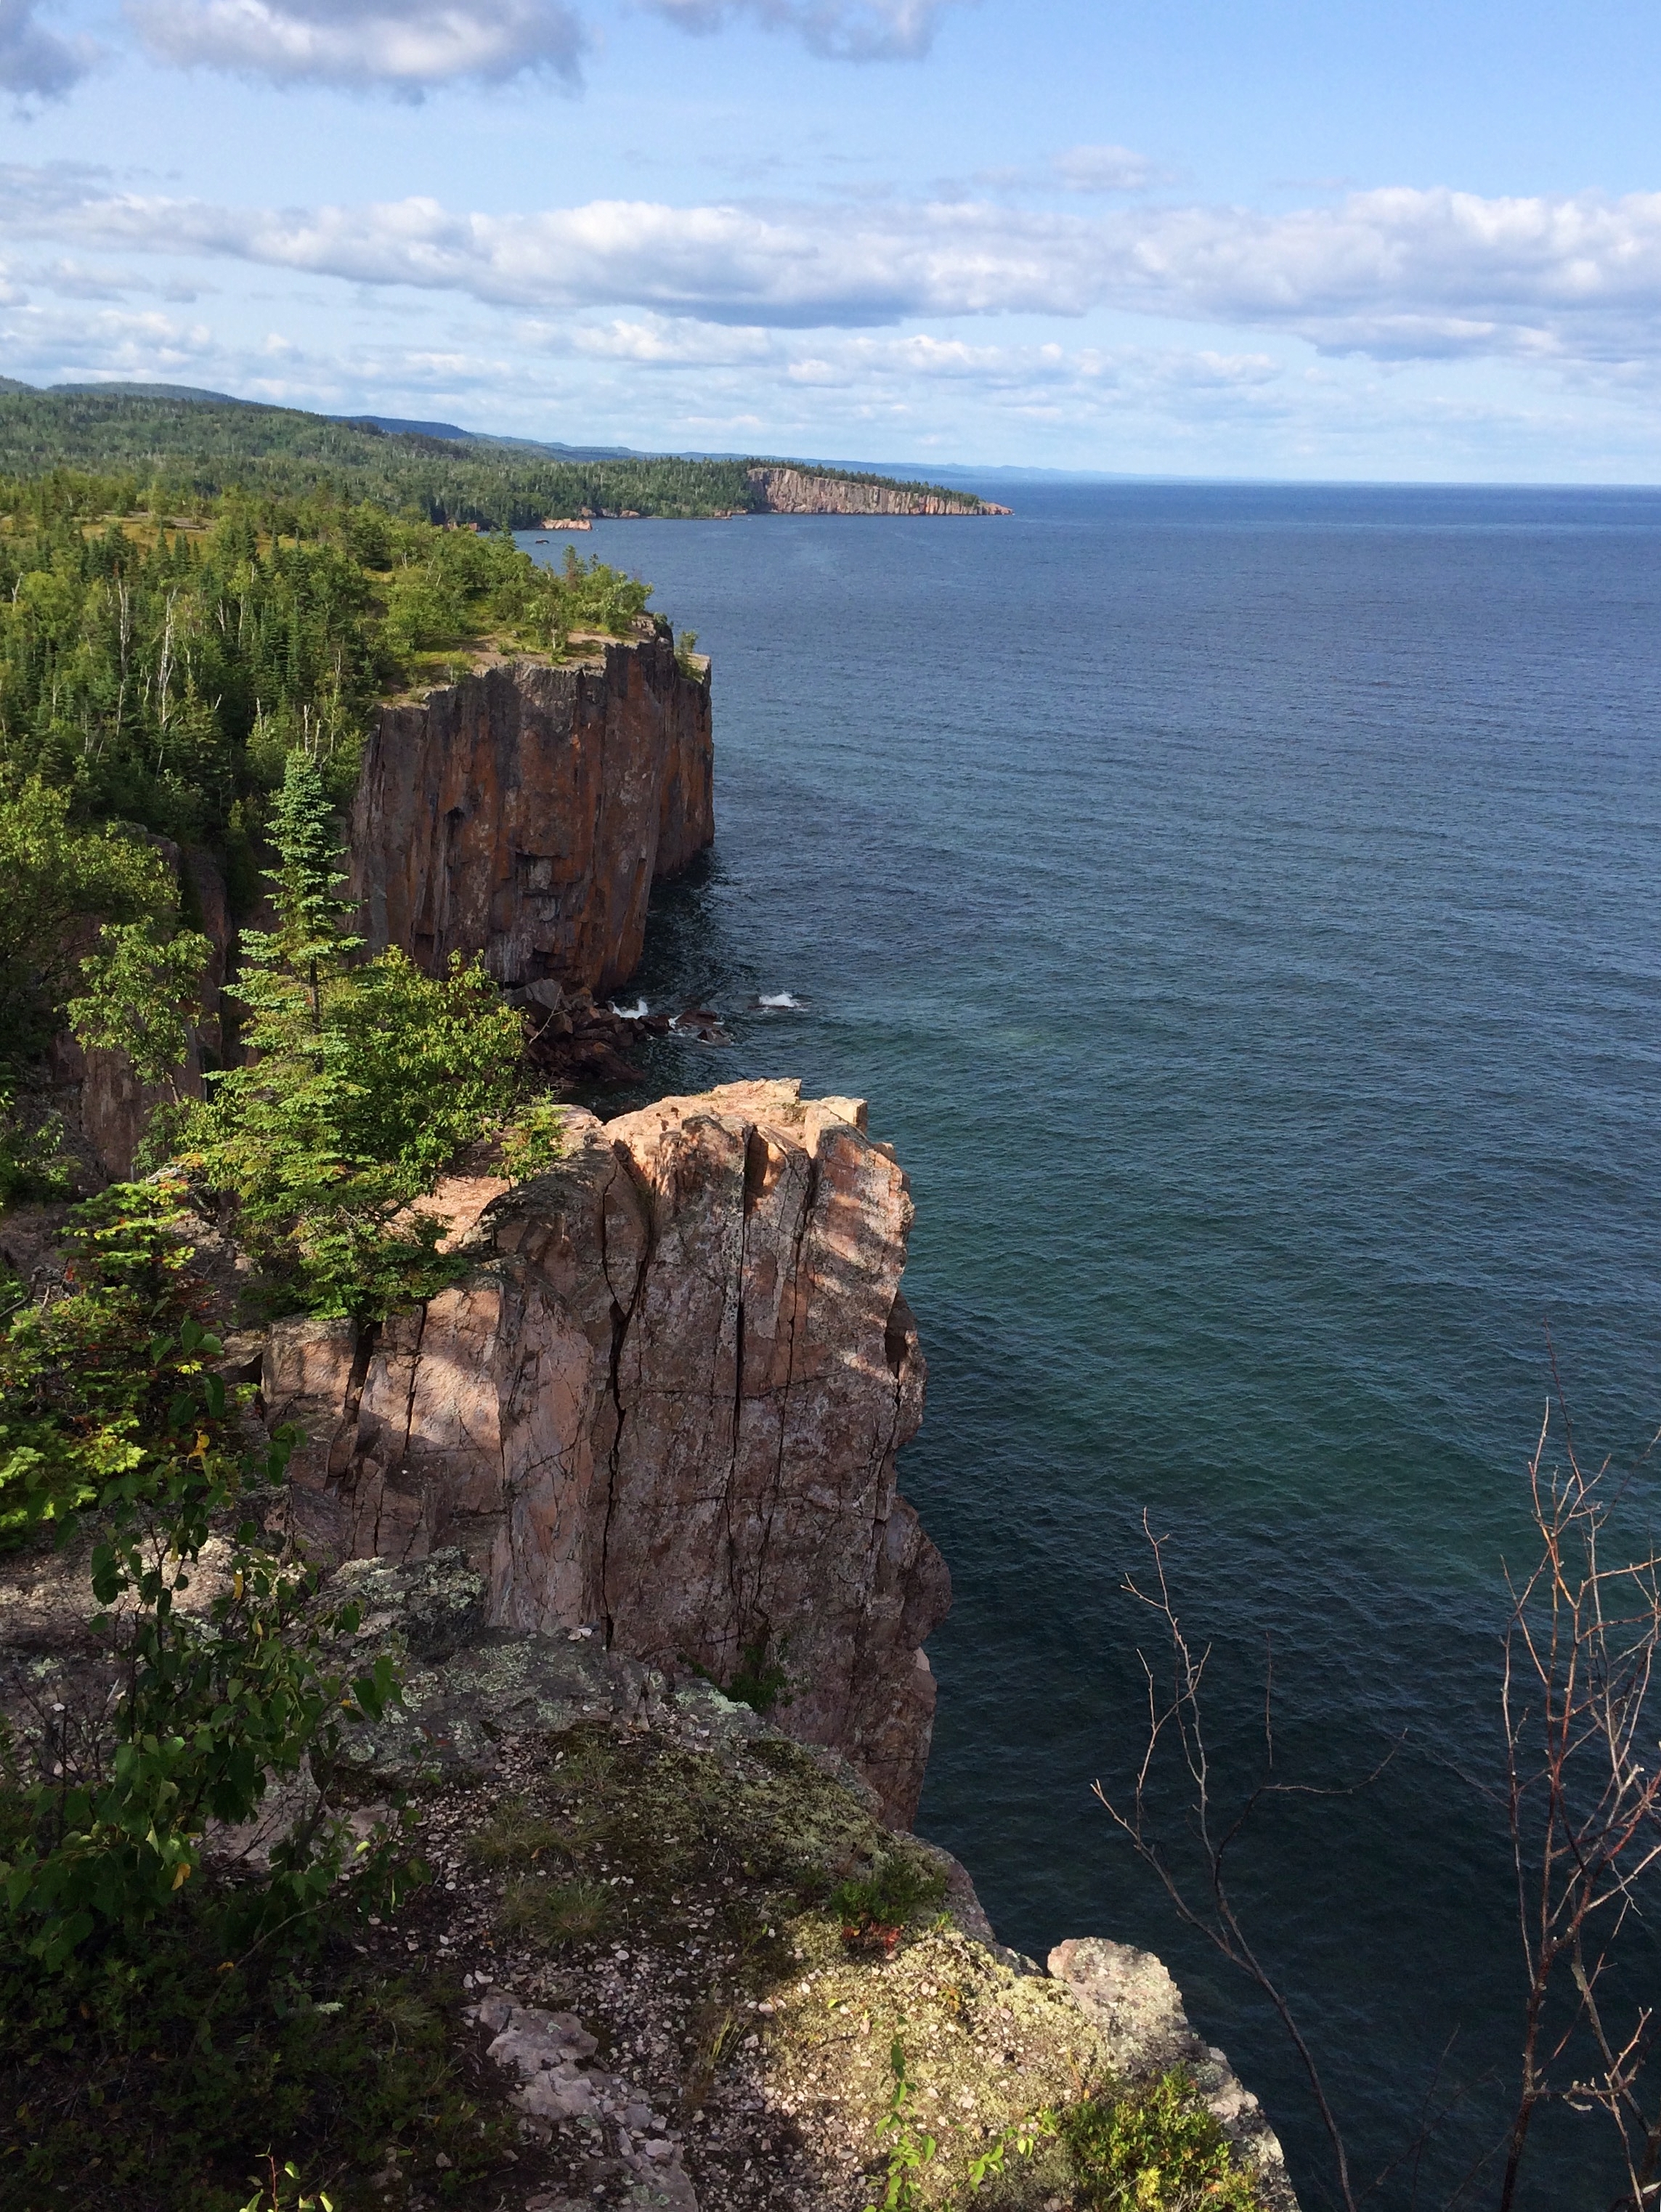 Palisade Head, North Shore via The Midwestival